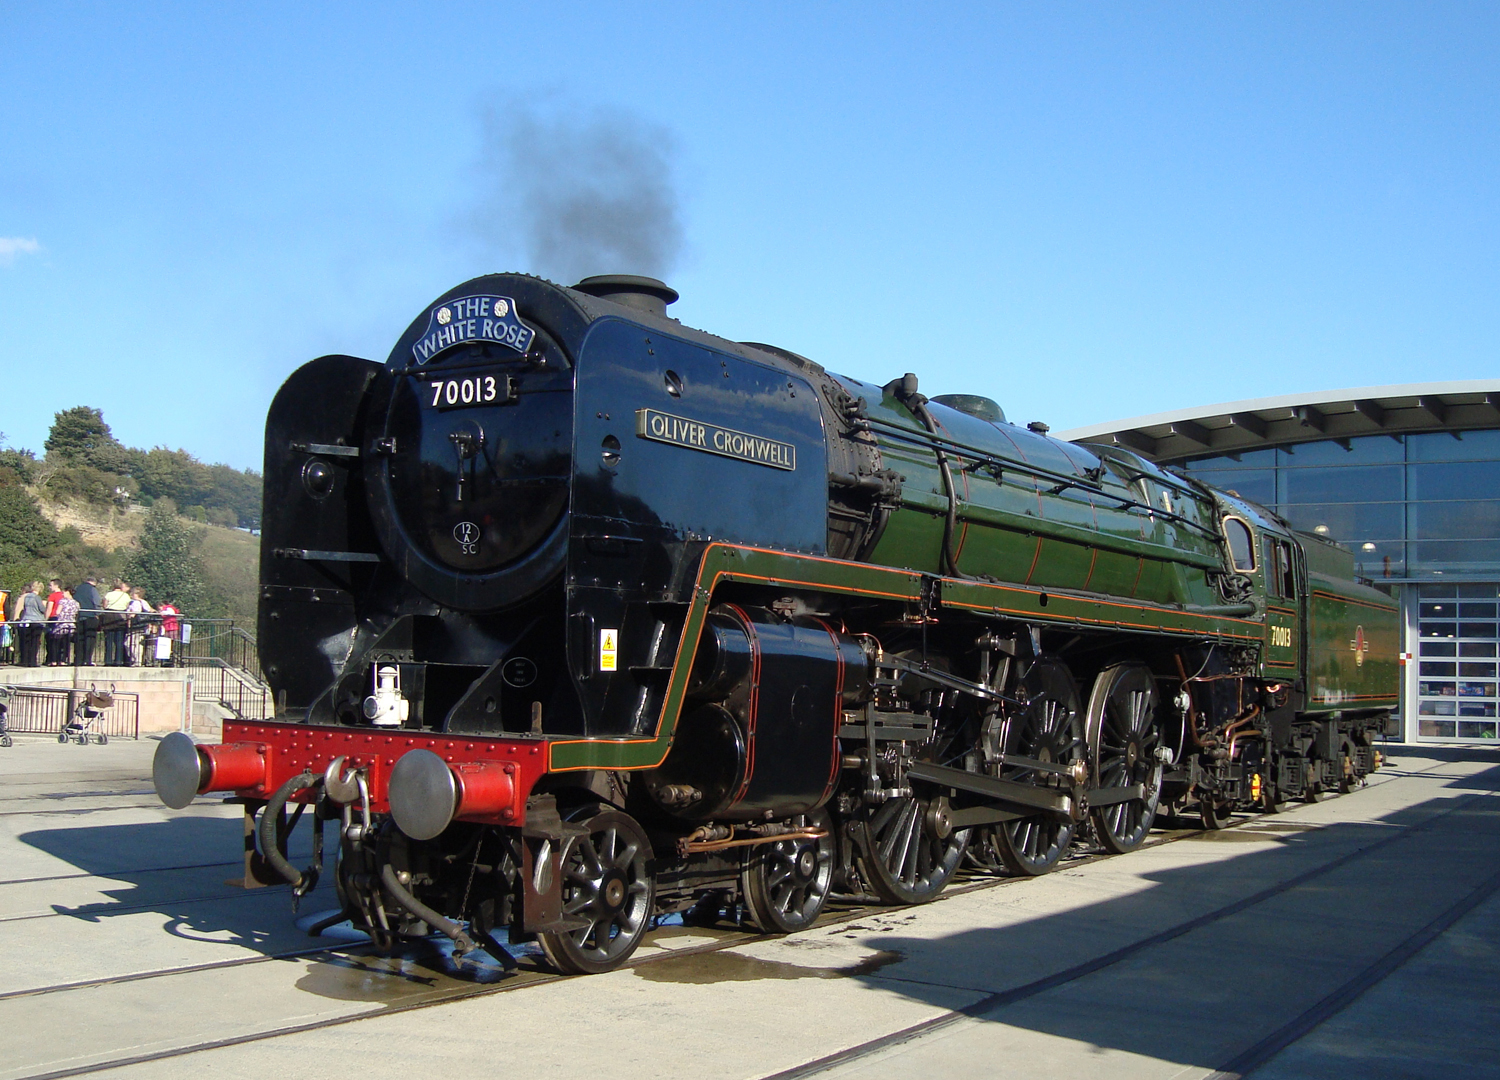 Guest Train at Locomotion